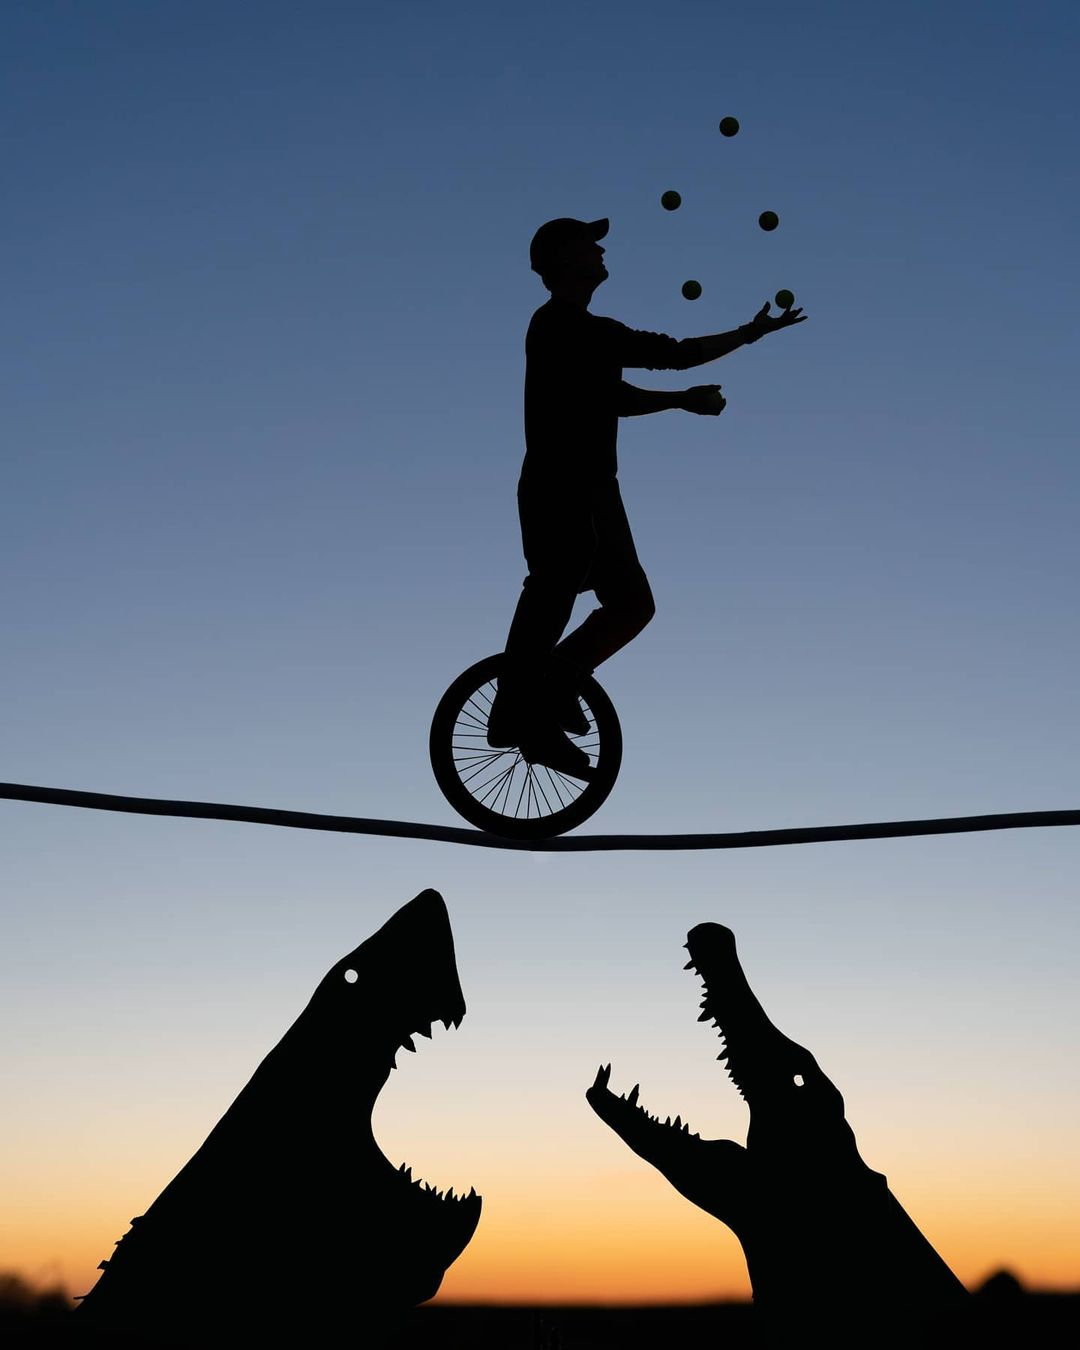 cardboard silhouette photography cutout juggling by john marshall